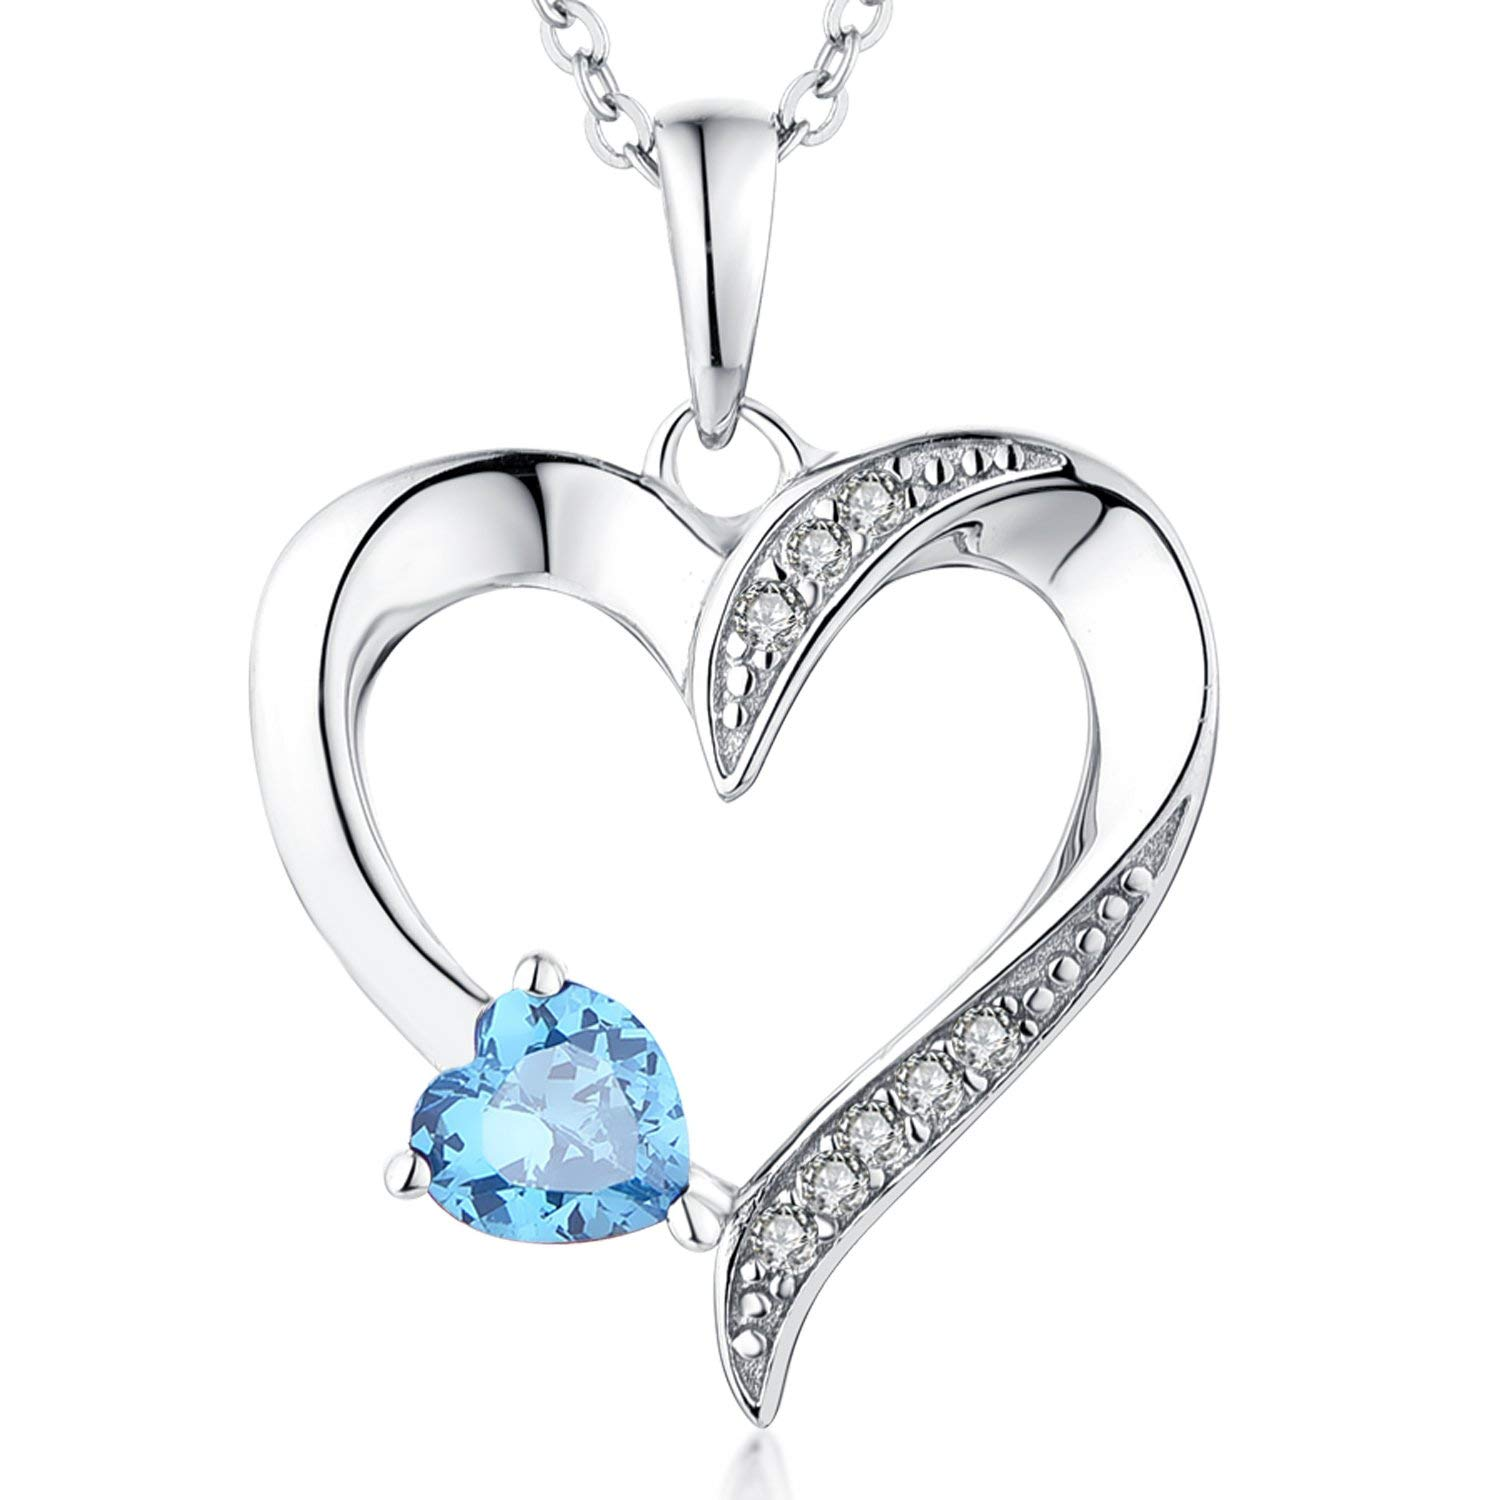 ecf6b4fbe Get Quotations · Heart Necklace-YL Women's Sterling Silver CZ Sapphire/Sky  Blue/Red/Pink